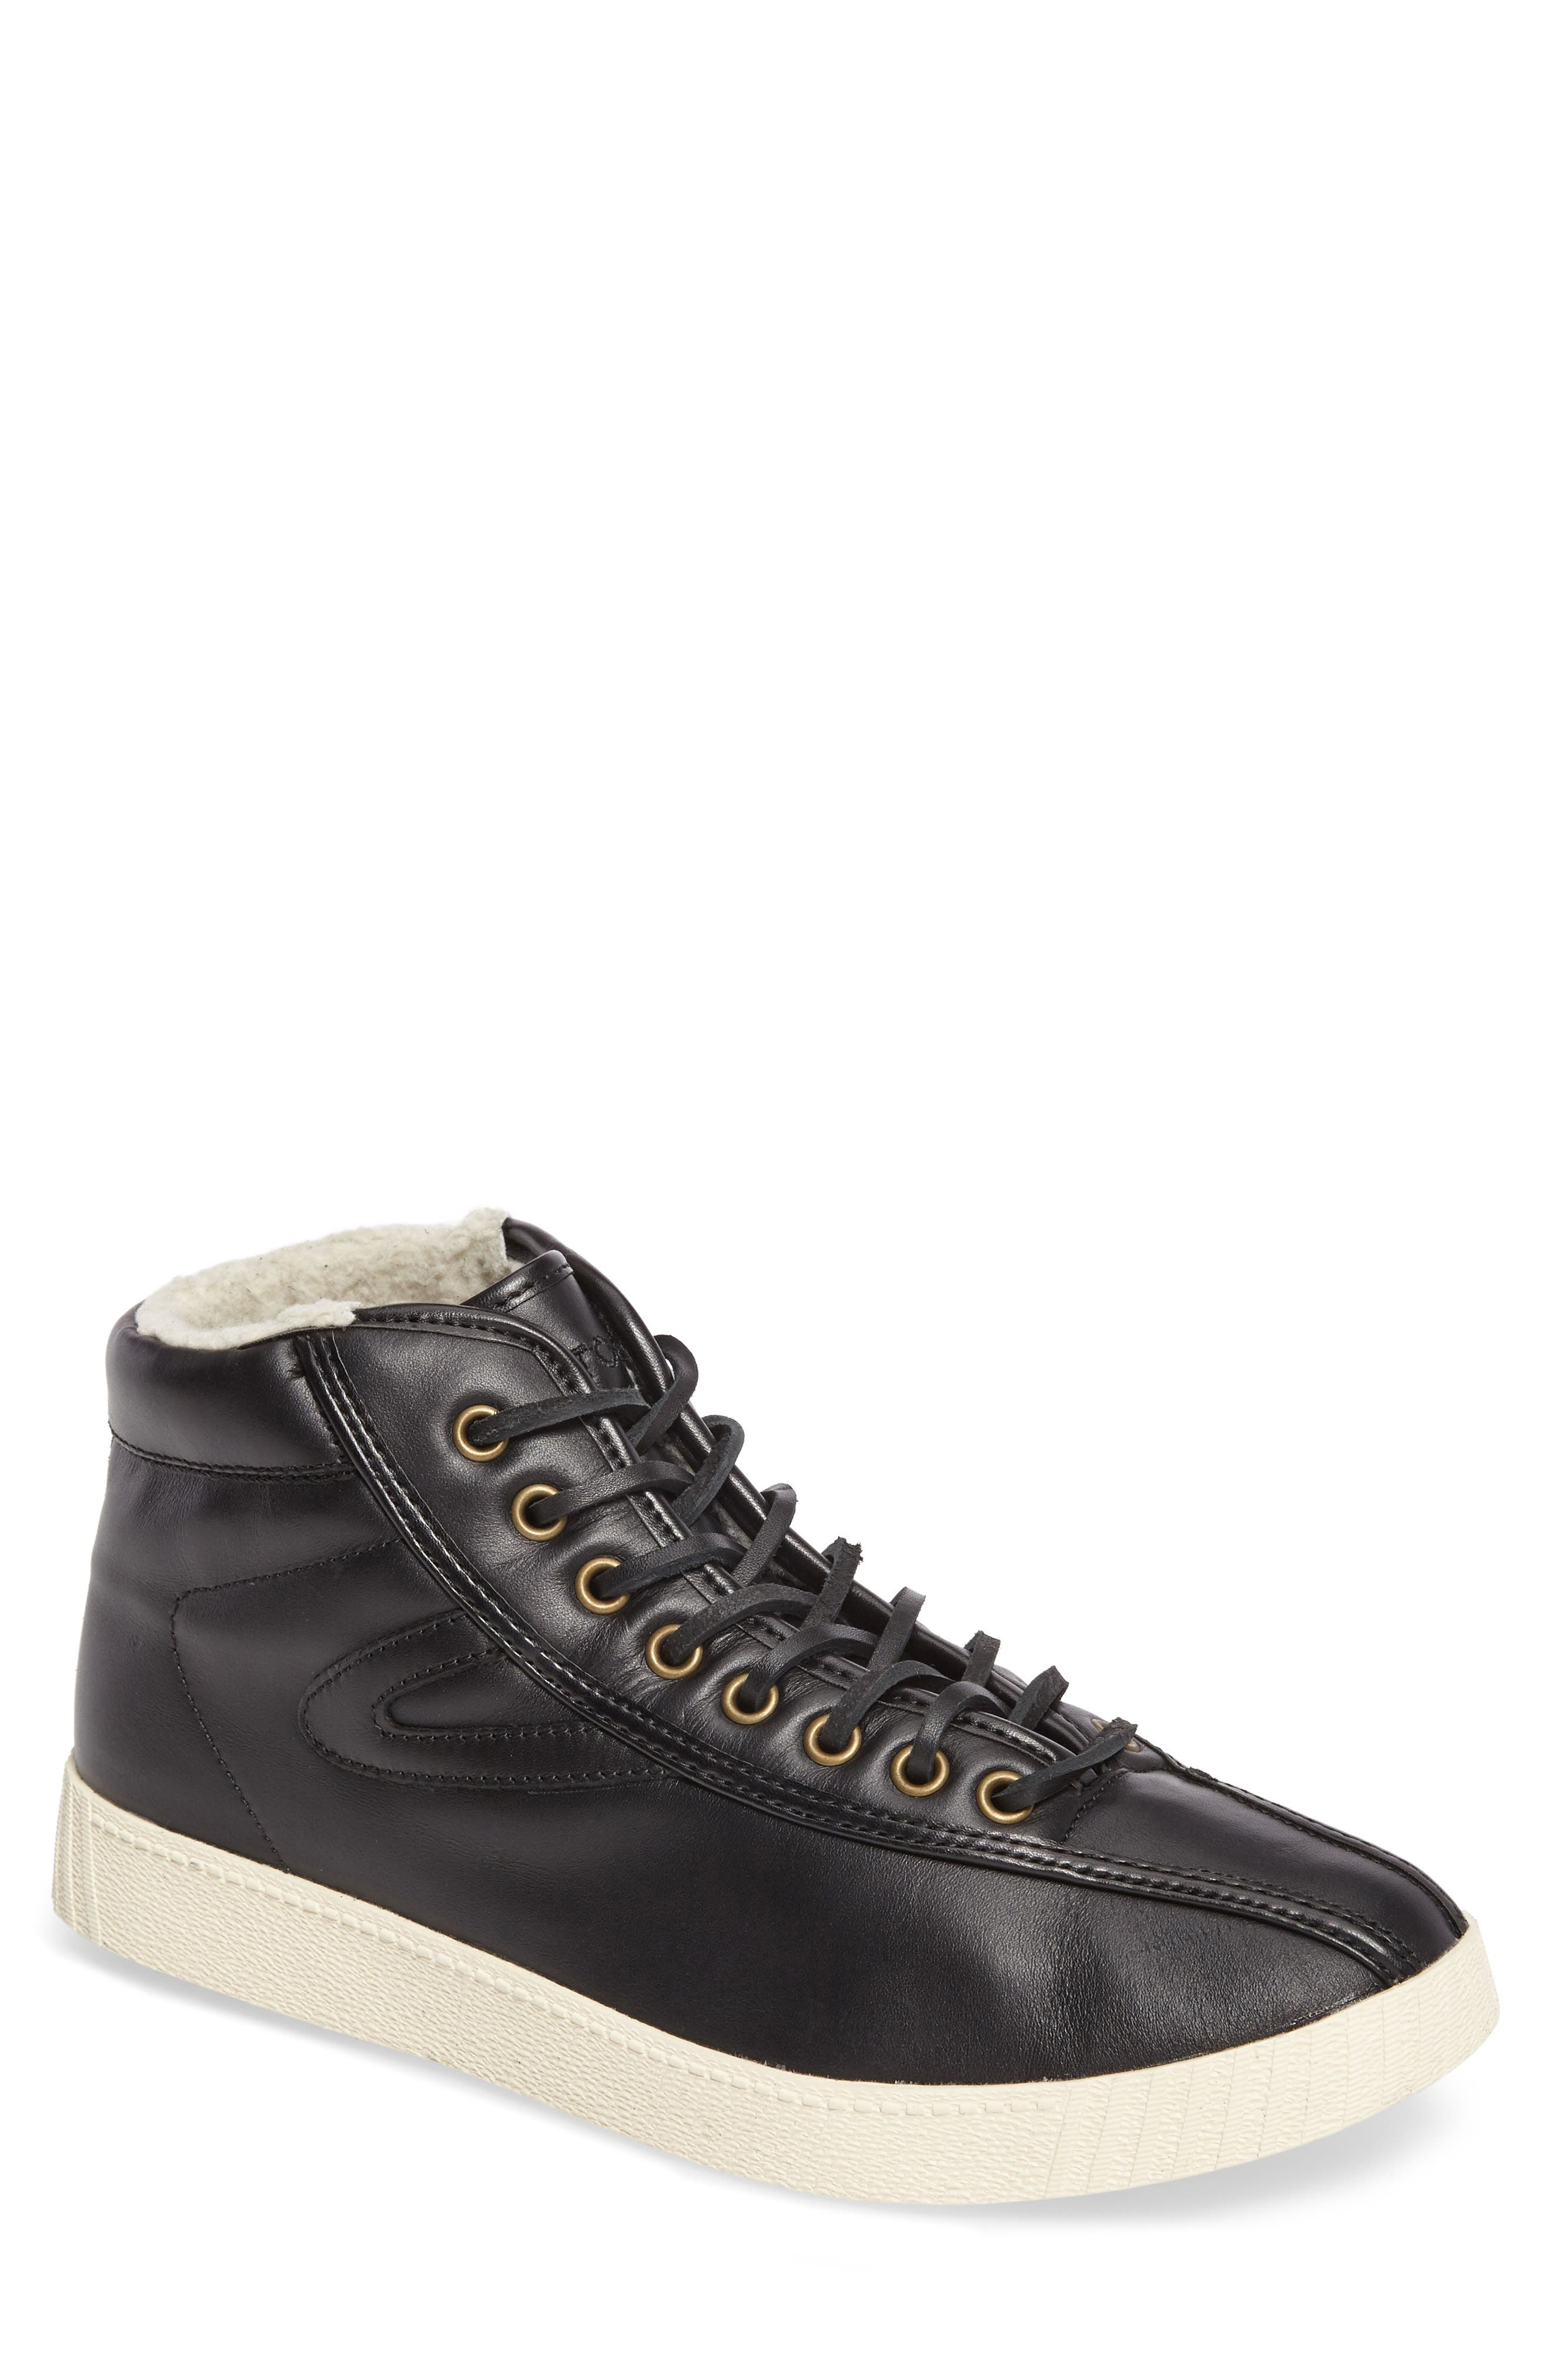 Alternate Image 1 Selected - Tretorn Nylite Hi 2 Sneaker (Men)